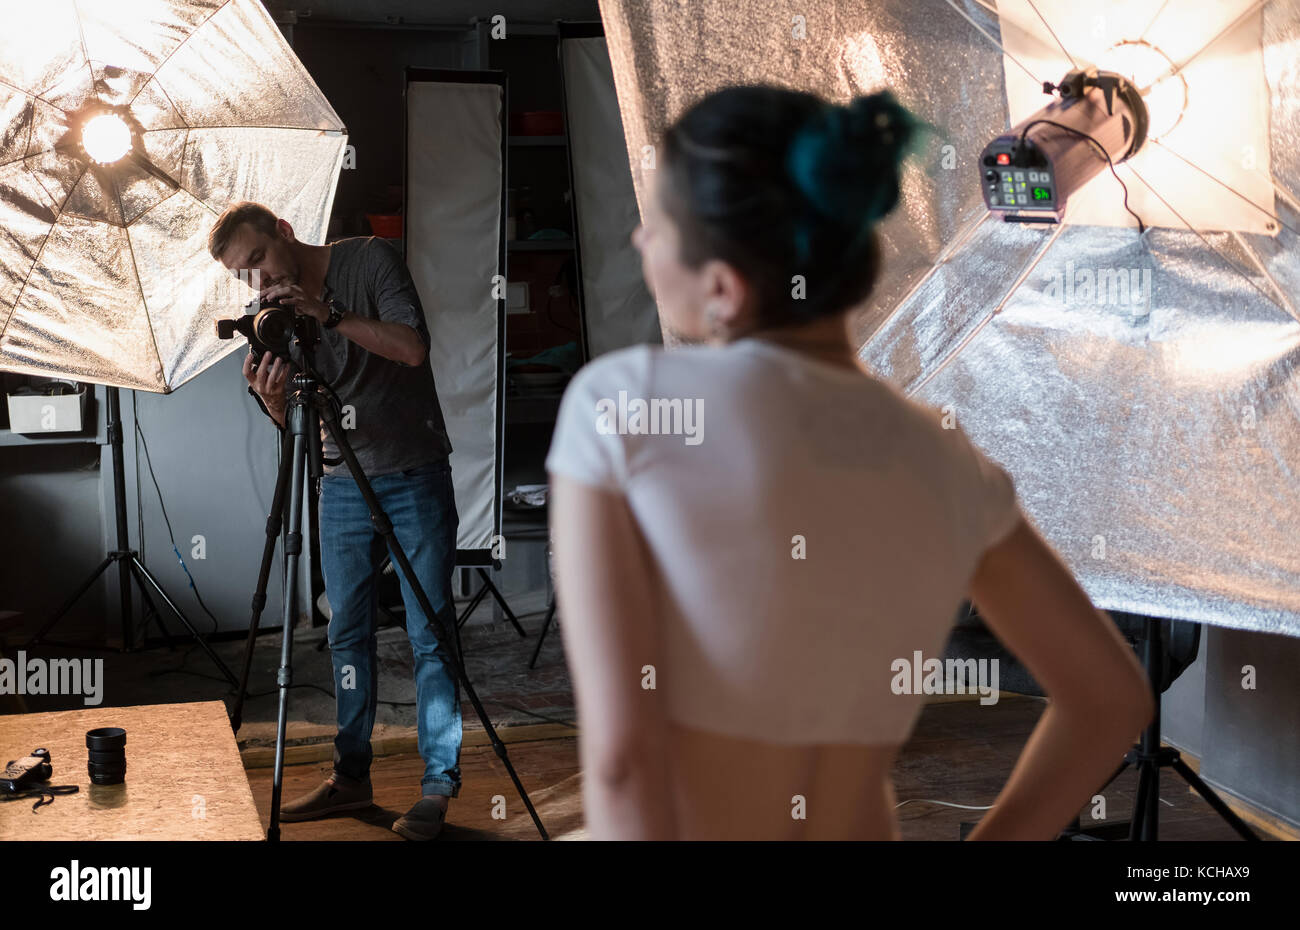 photographer in the process of shooting a model in a photo Studio Stock Photo